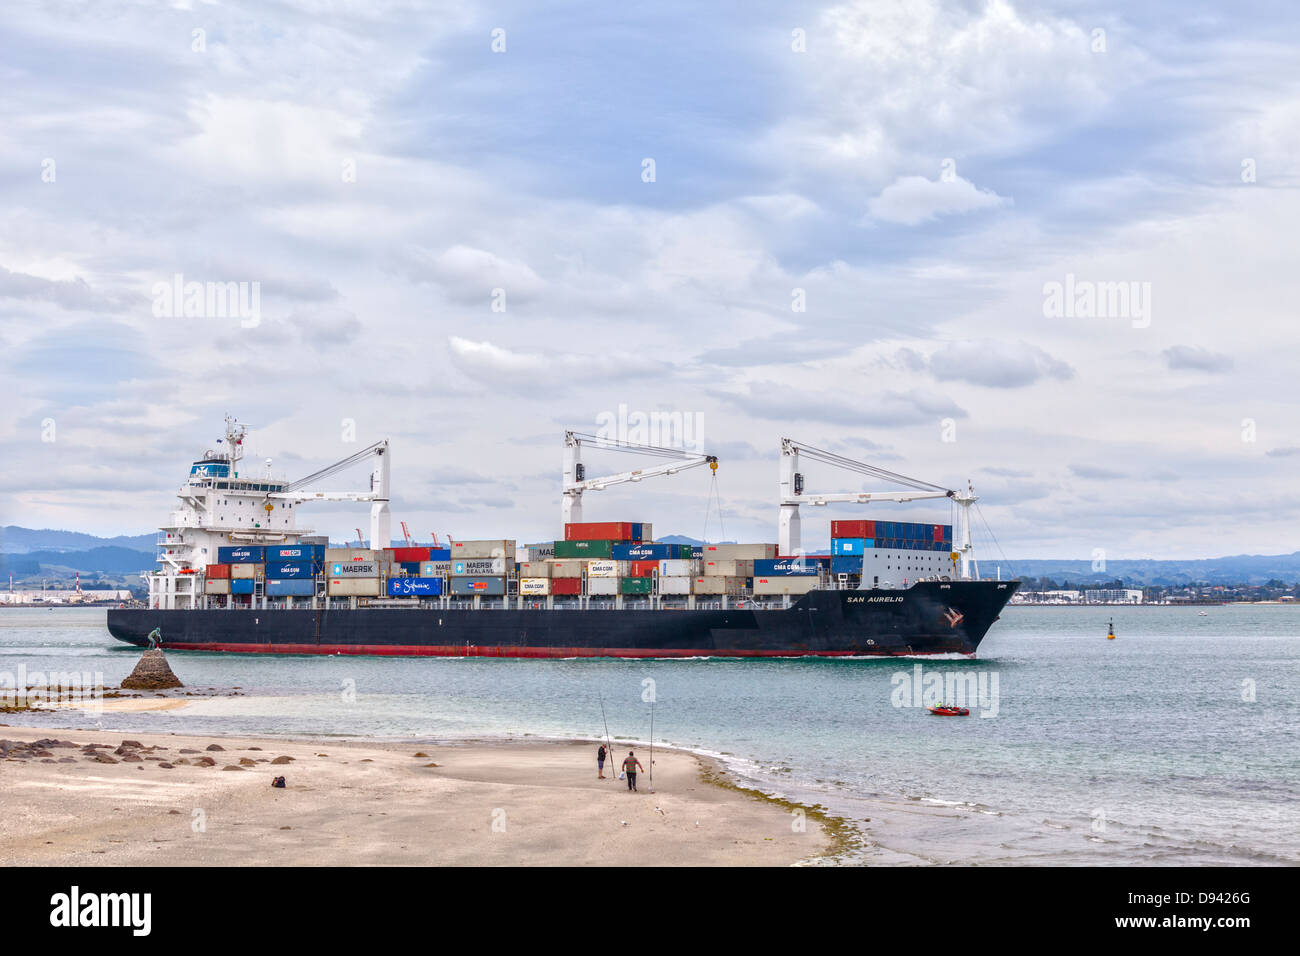 The container ship 'San Aurelio' leaving the Port of Tauranga in the Bay of Plenty Region of New Zealand. - Stock Image